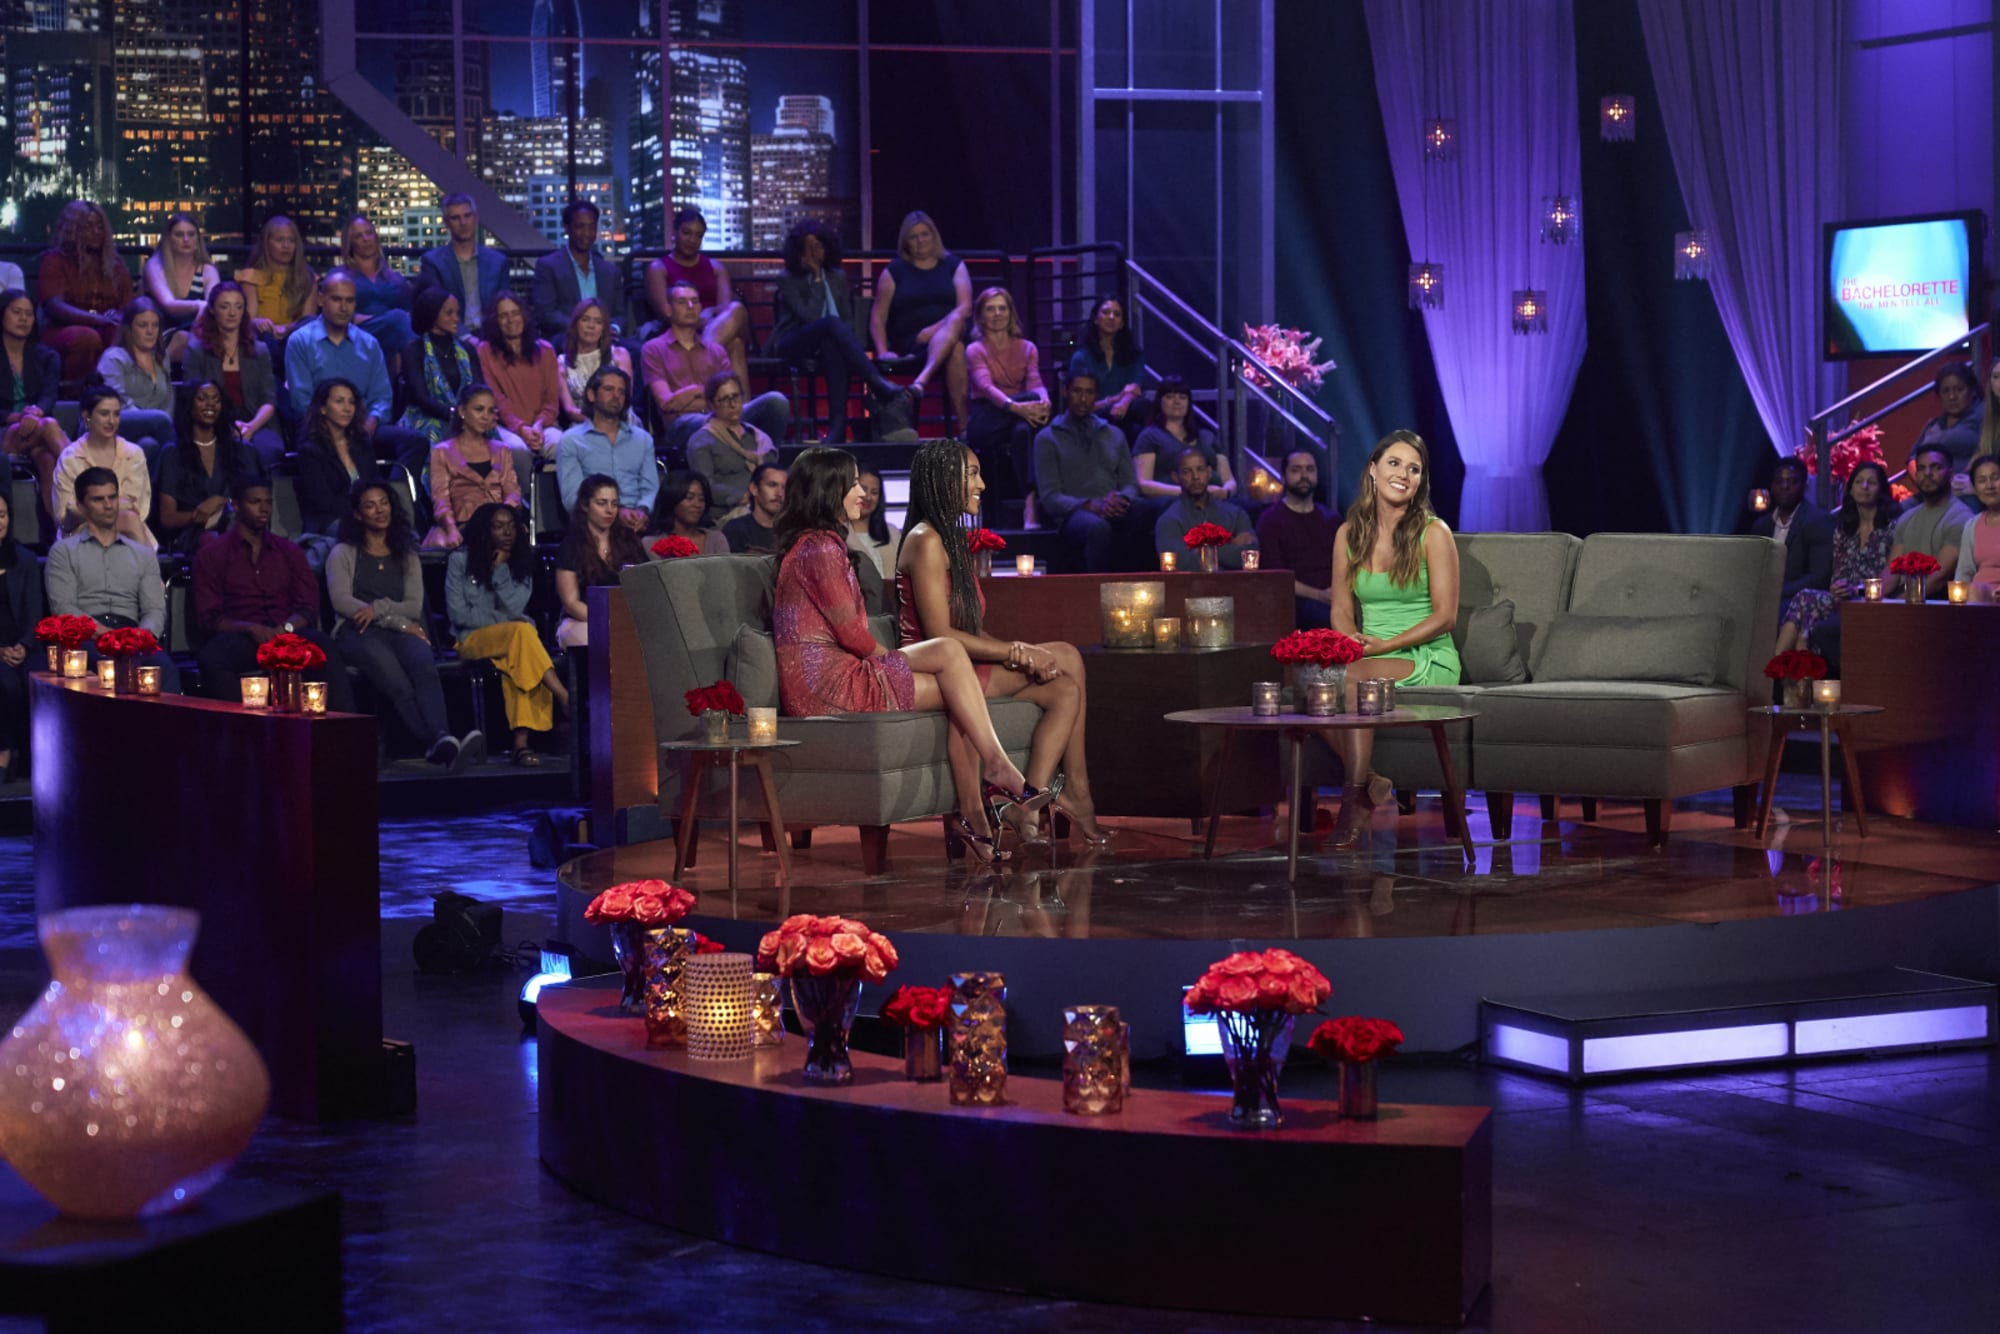 The Bachelorette Season 17, Episode 8: How to watch